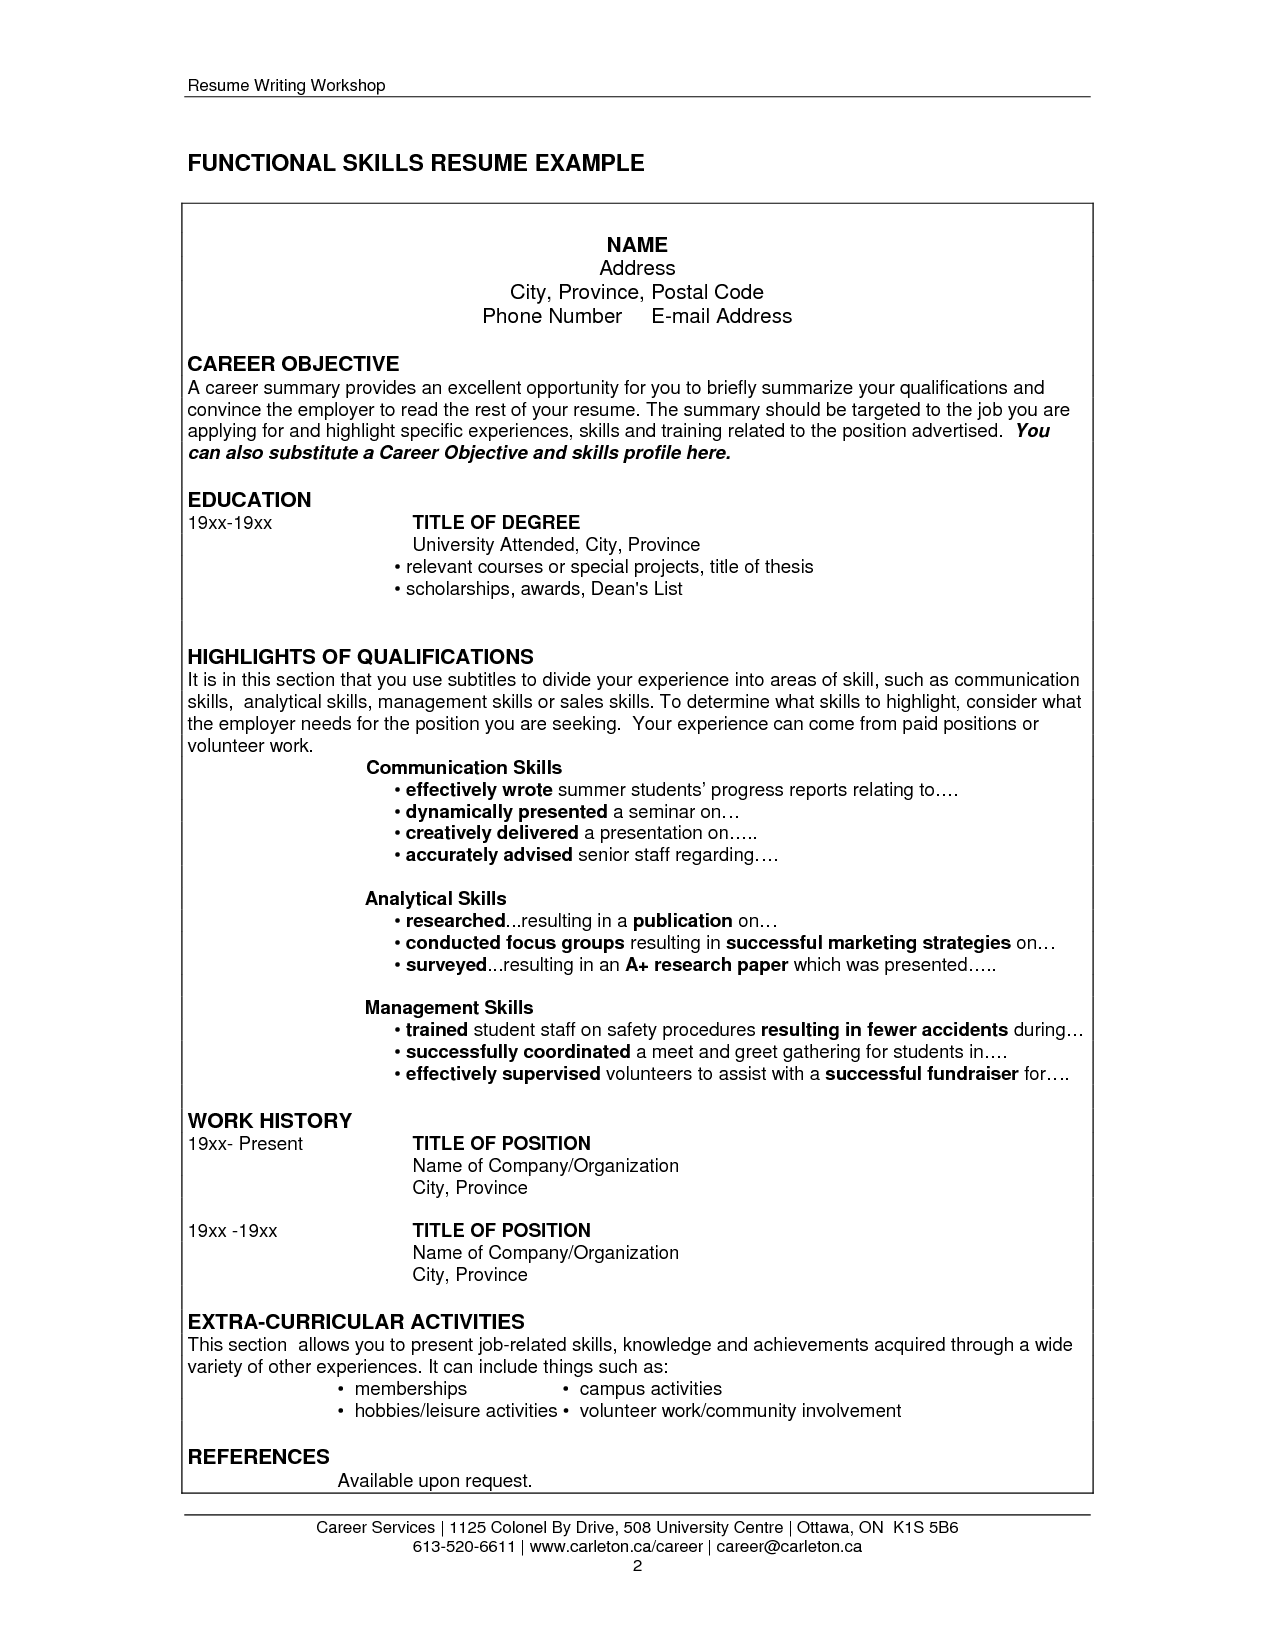 Superb Image Result For Skills Resume Format Intended For Skill Resume